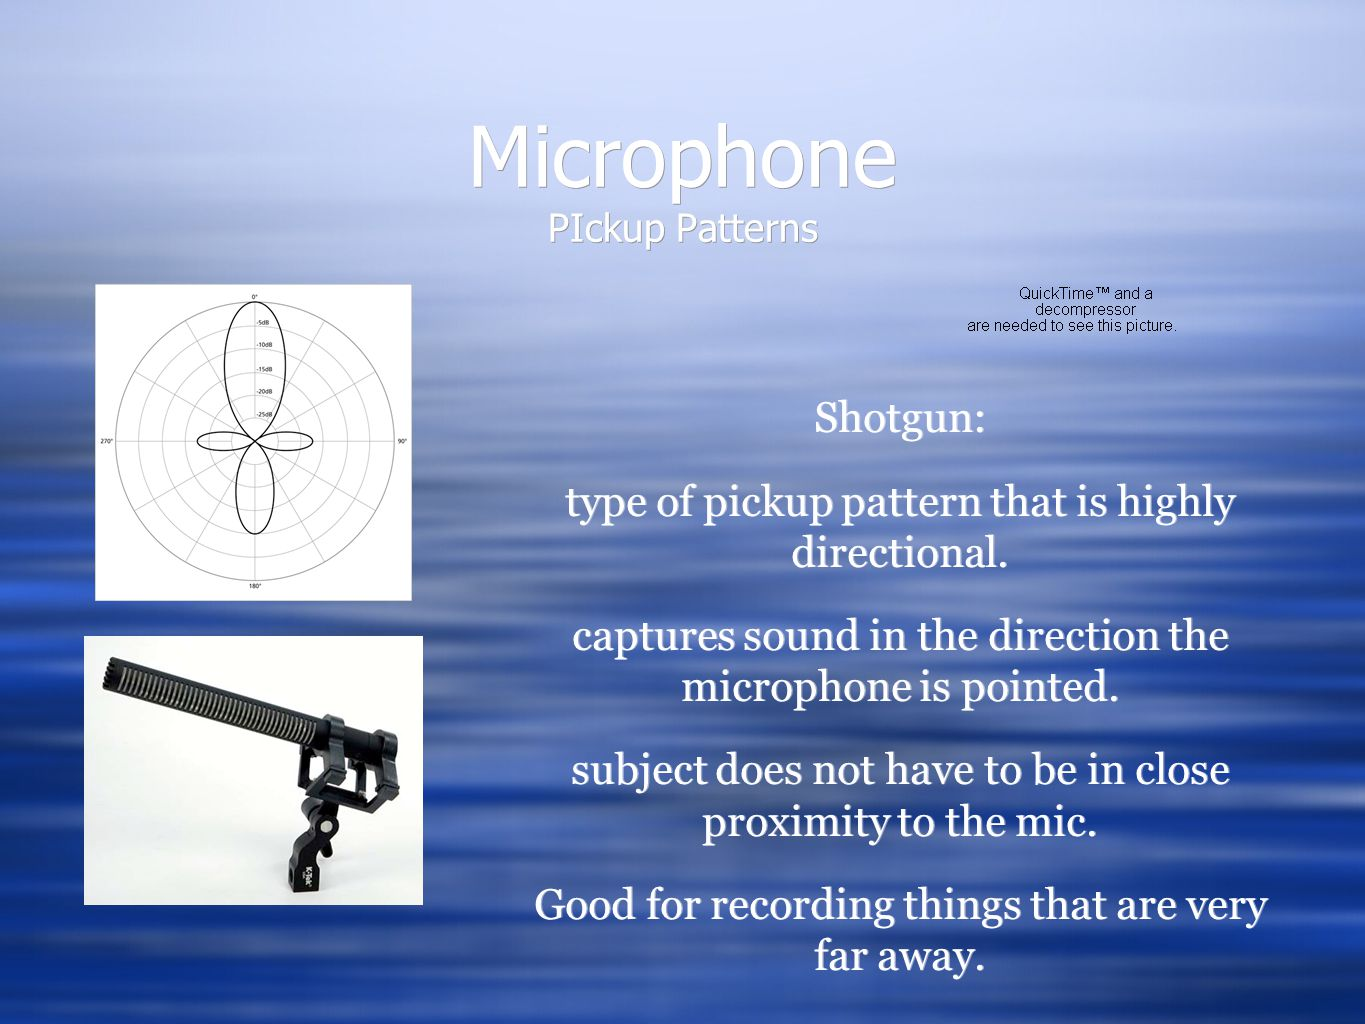 Microphone PIckup Patterns Shotgun: type of pickup pattern that is highly directional. captures sound in the direction the microphone is pointed. subj